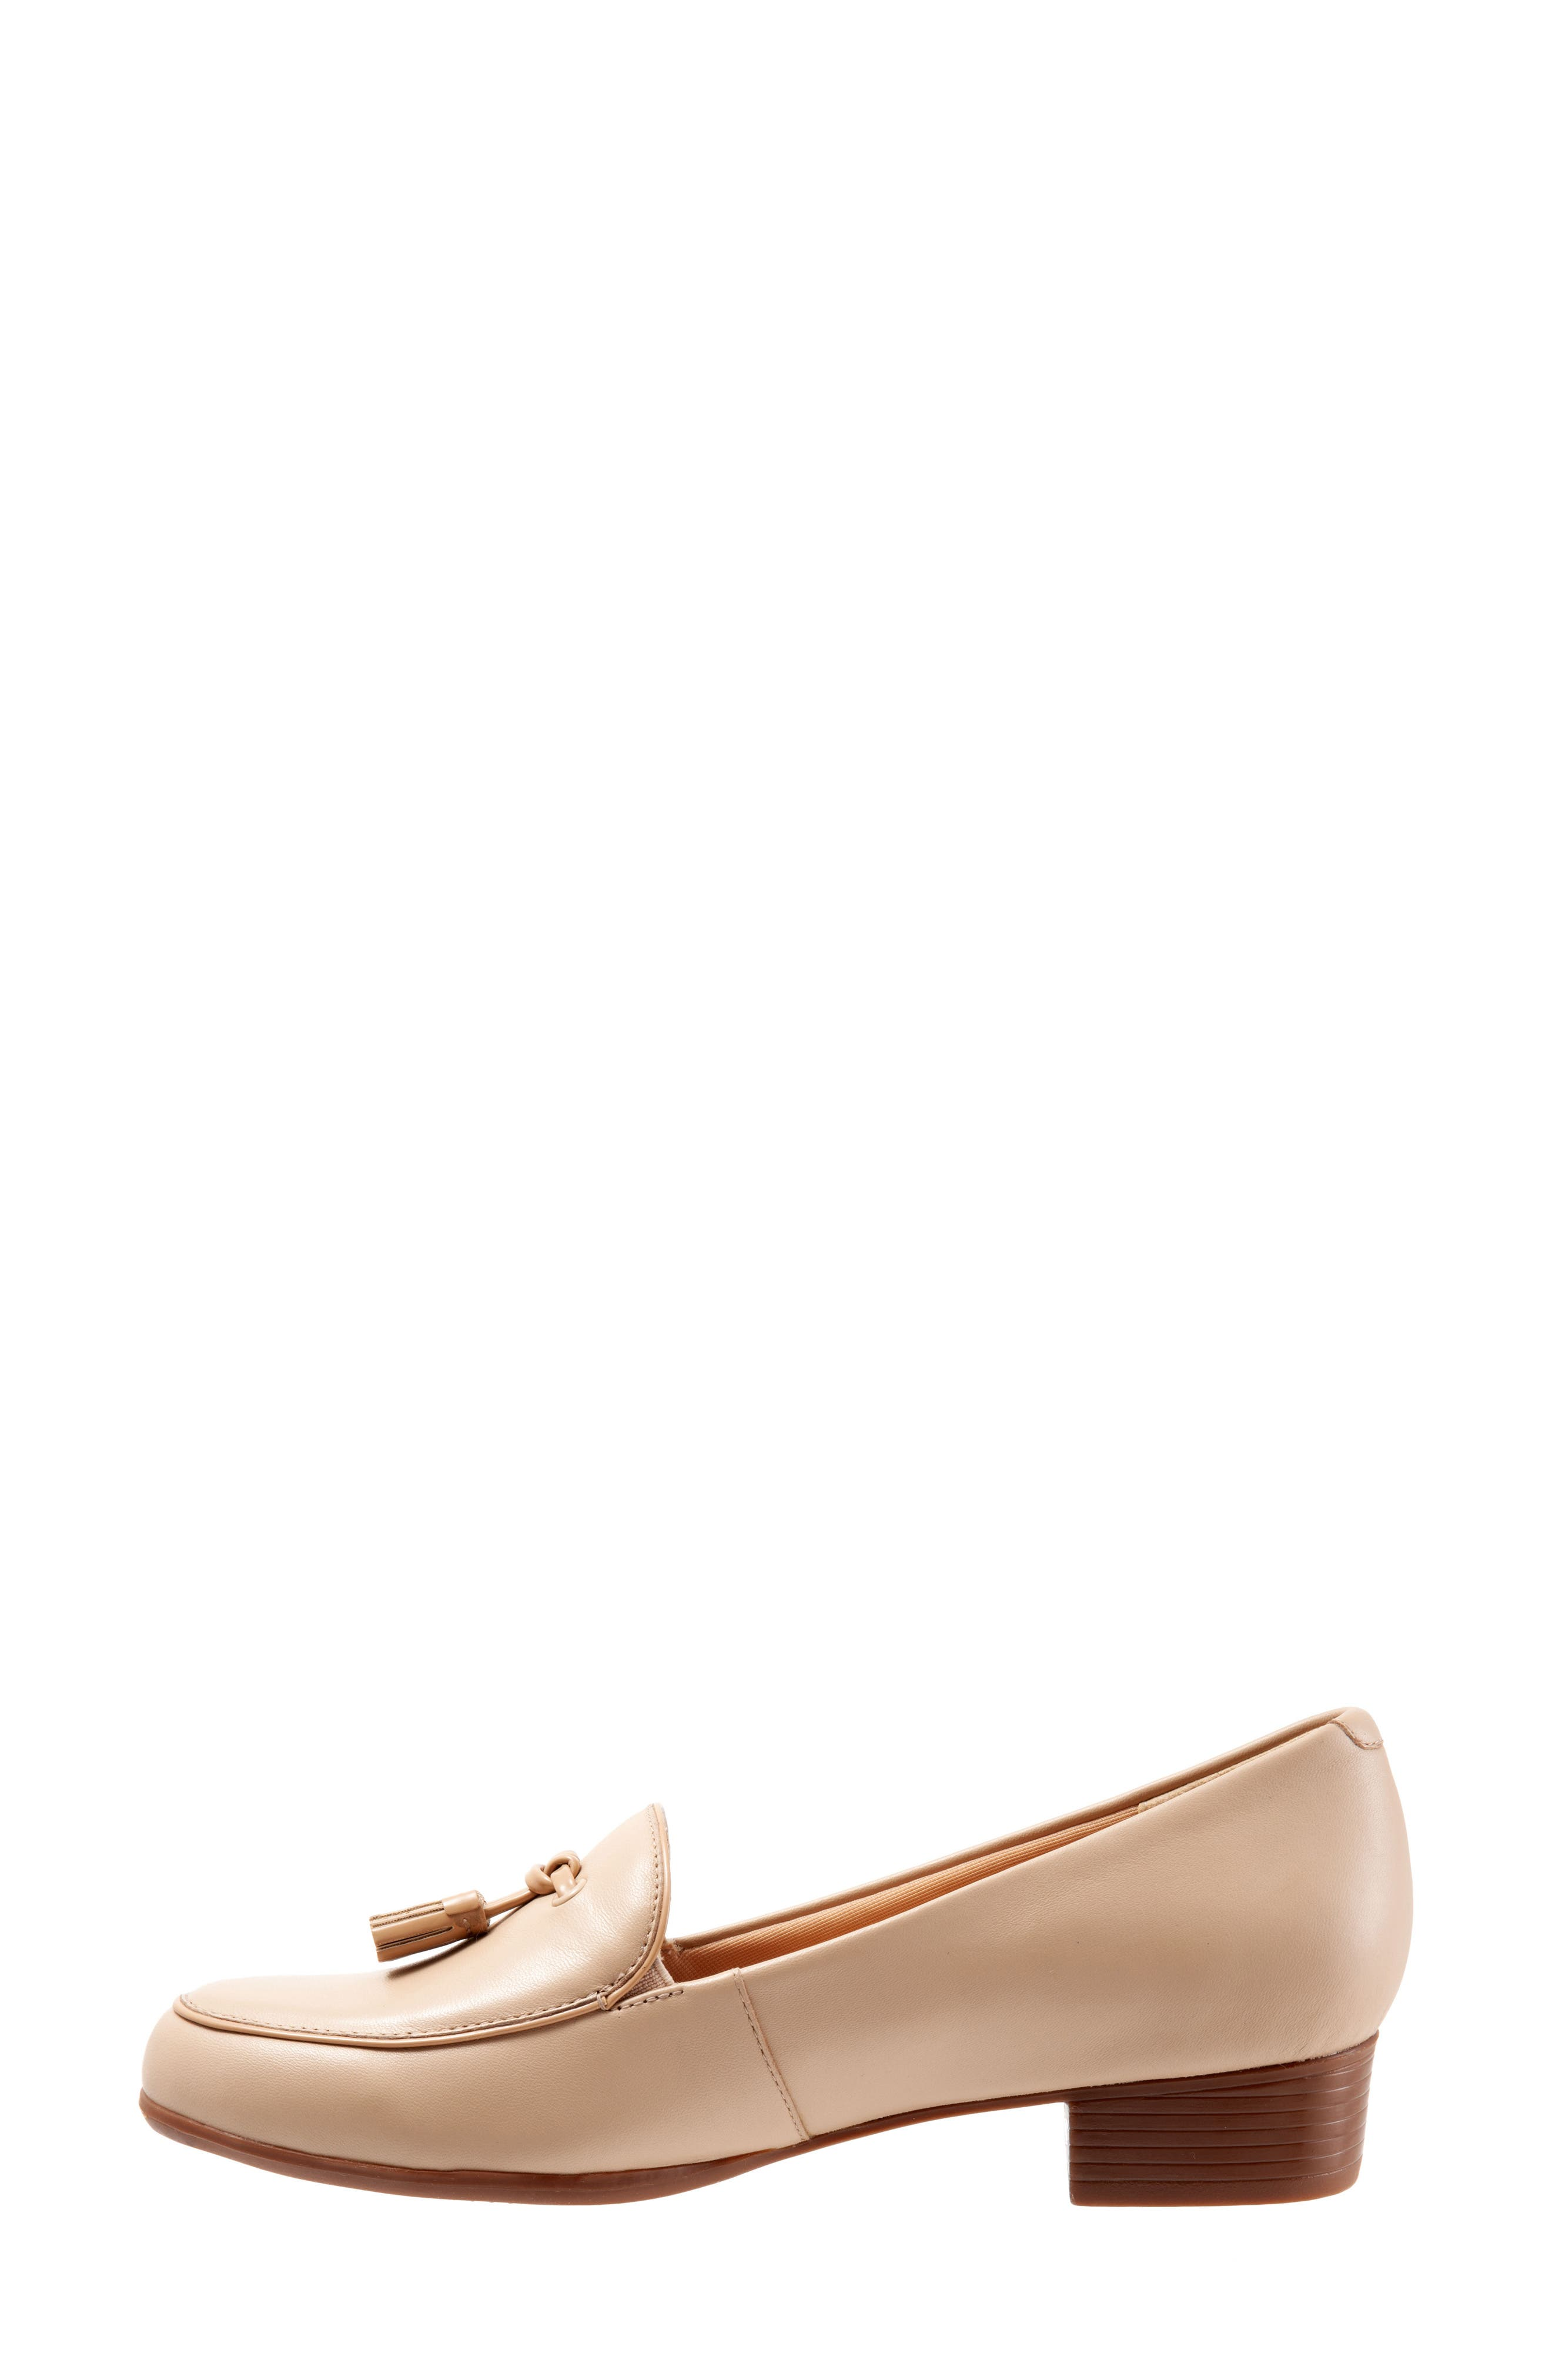 TROTTERS, Mary Tassel Loafer, Alternate thumbnail 8, color, NUDE LEATHER